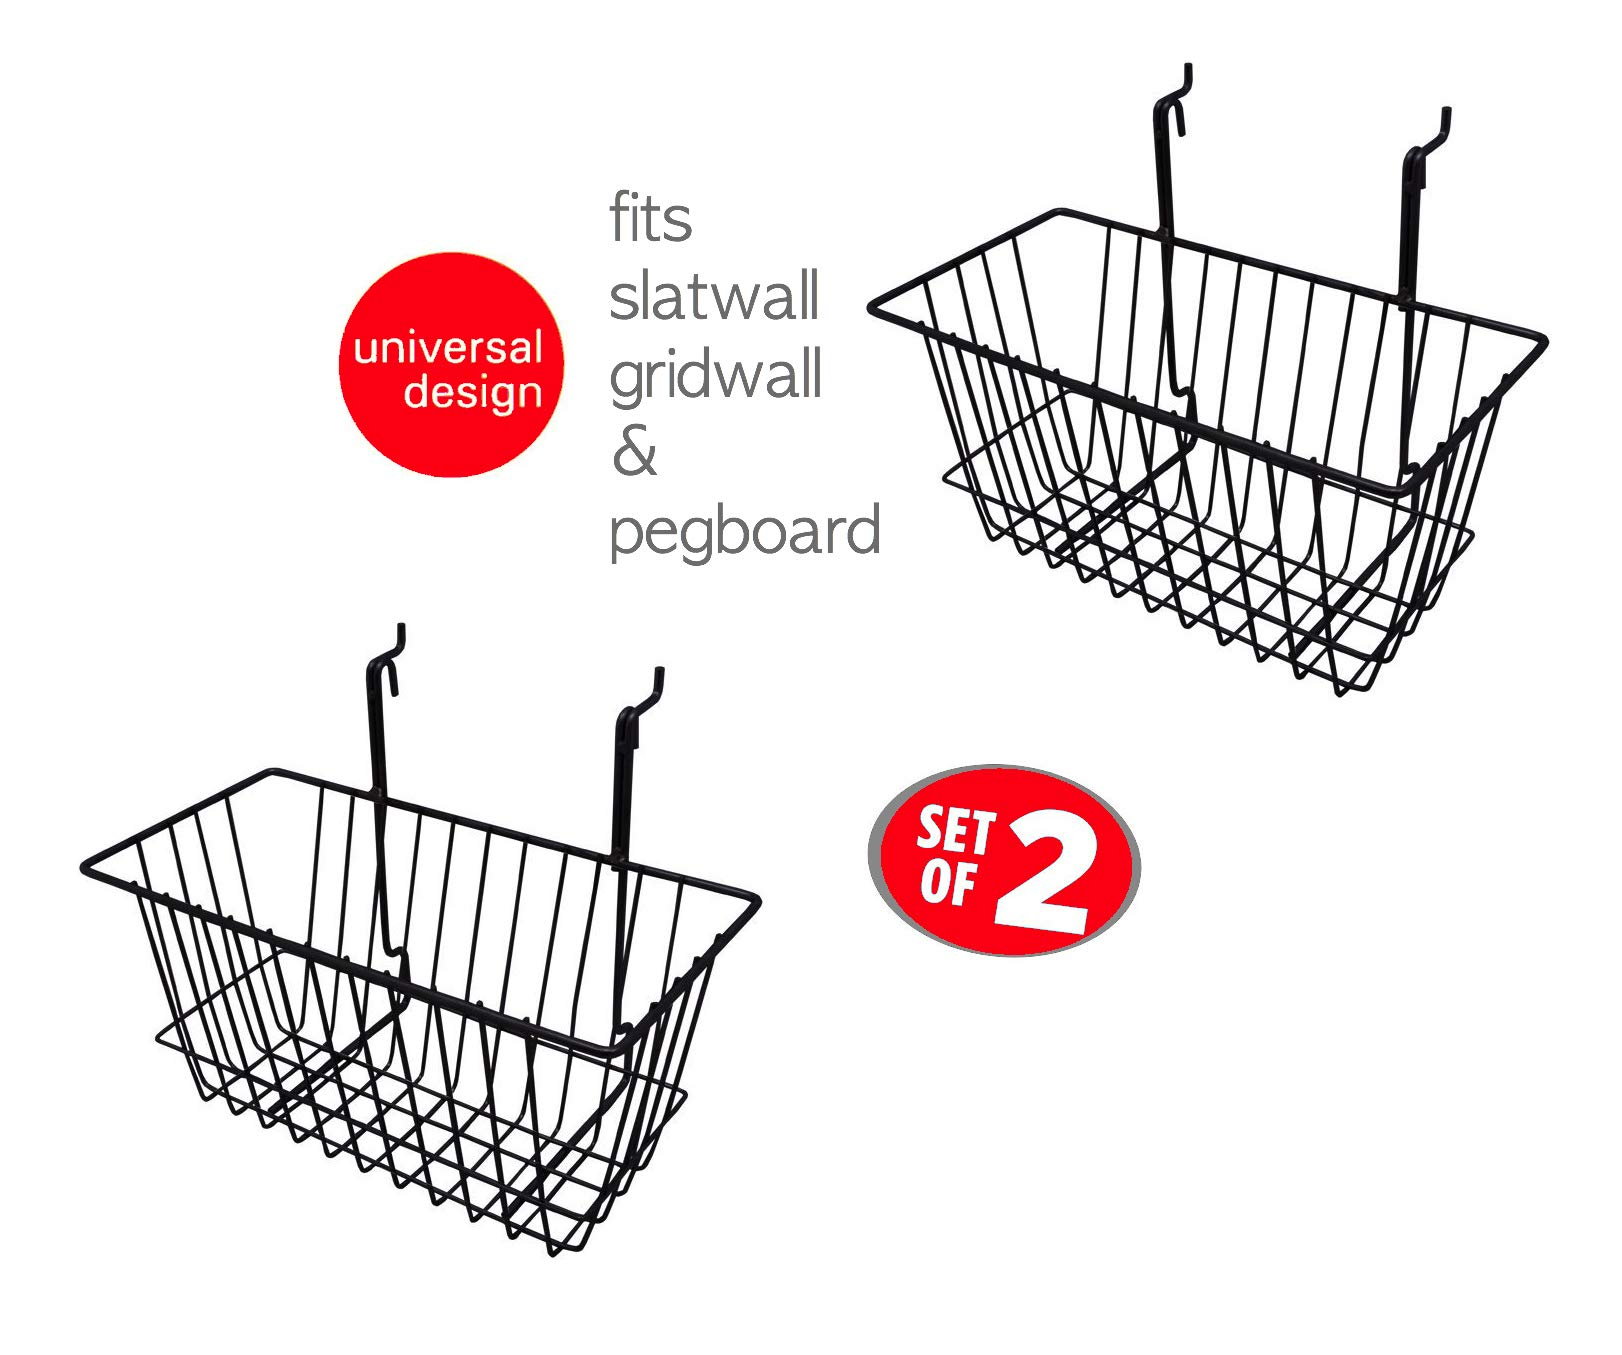 Only Hangers Small Wire Storage Baskets for Gridwall, Slatwall and Pegboard - Black Finish - Dimensions: 12'' x 6'' x 6'' Deep - Economically Sold in a Set of 2 Baskets by Only Hangers (Image #1)